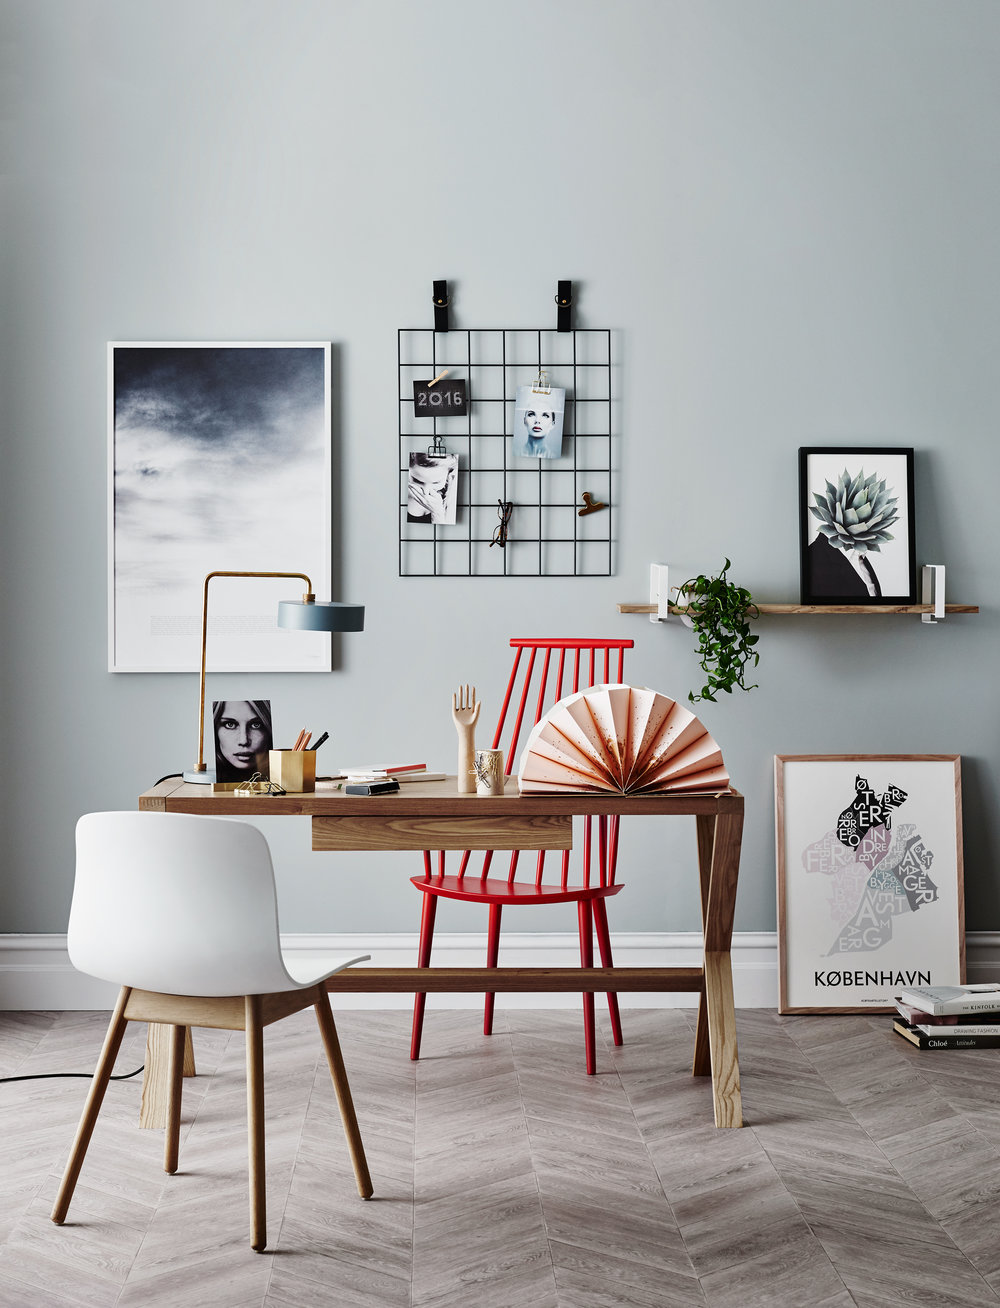 Adding a curated selection of artwork and curios offers daily inspiration.  Consider what resonates with you and mix and match frames to suit.  Remember affordable art can be changed regularly to suit your mood or focus.  Image courtesy of Norsu Interiors.  Styling: Michelle Halford, Pic: Lisa Cohen.